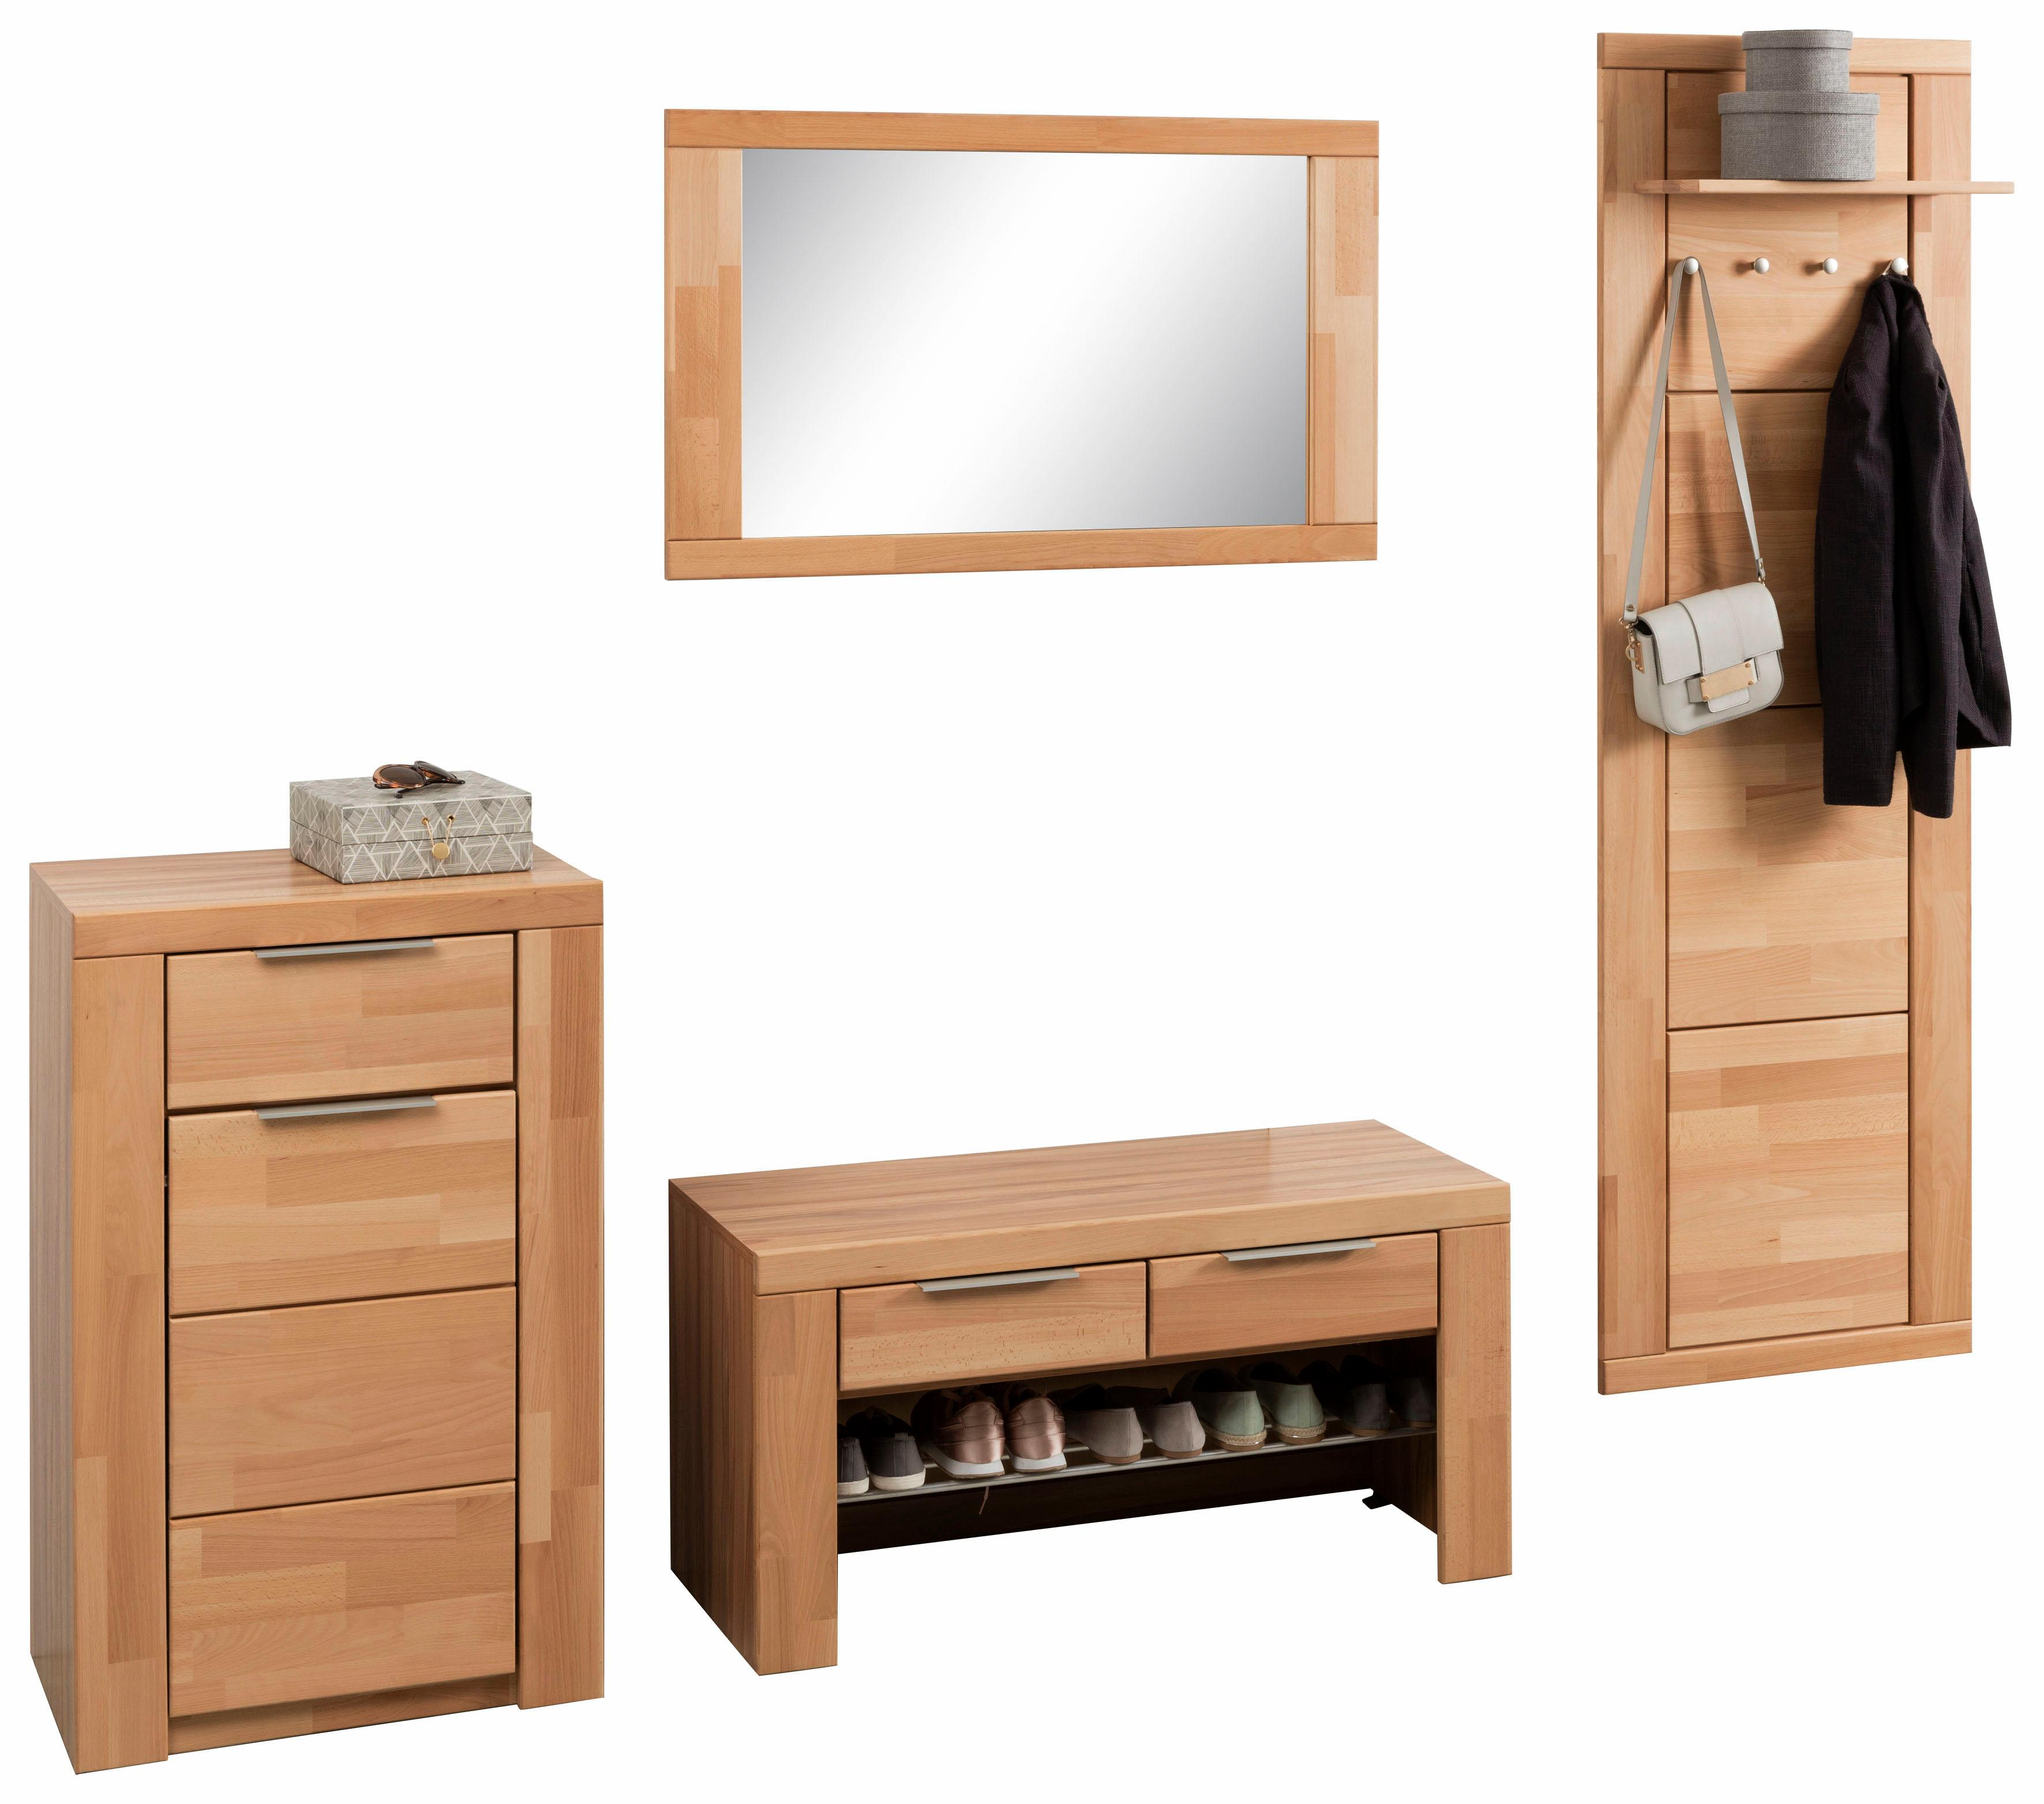 garderoben set zara set 4 tlg auf rechnung kaufen baur. Black Bedroom Furniture Sets. Home Design Ideas